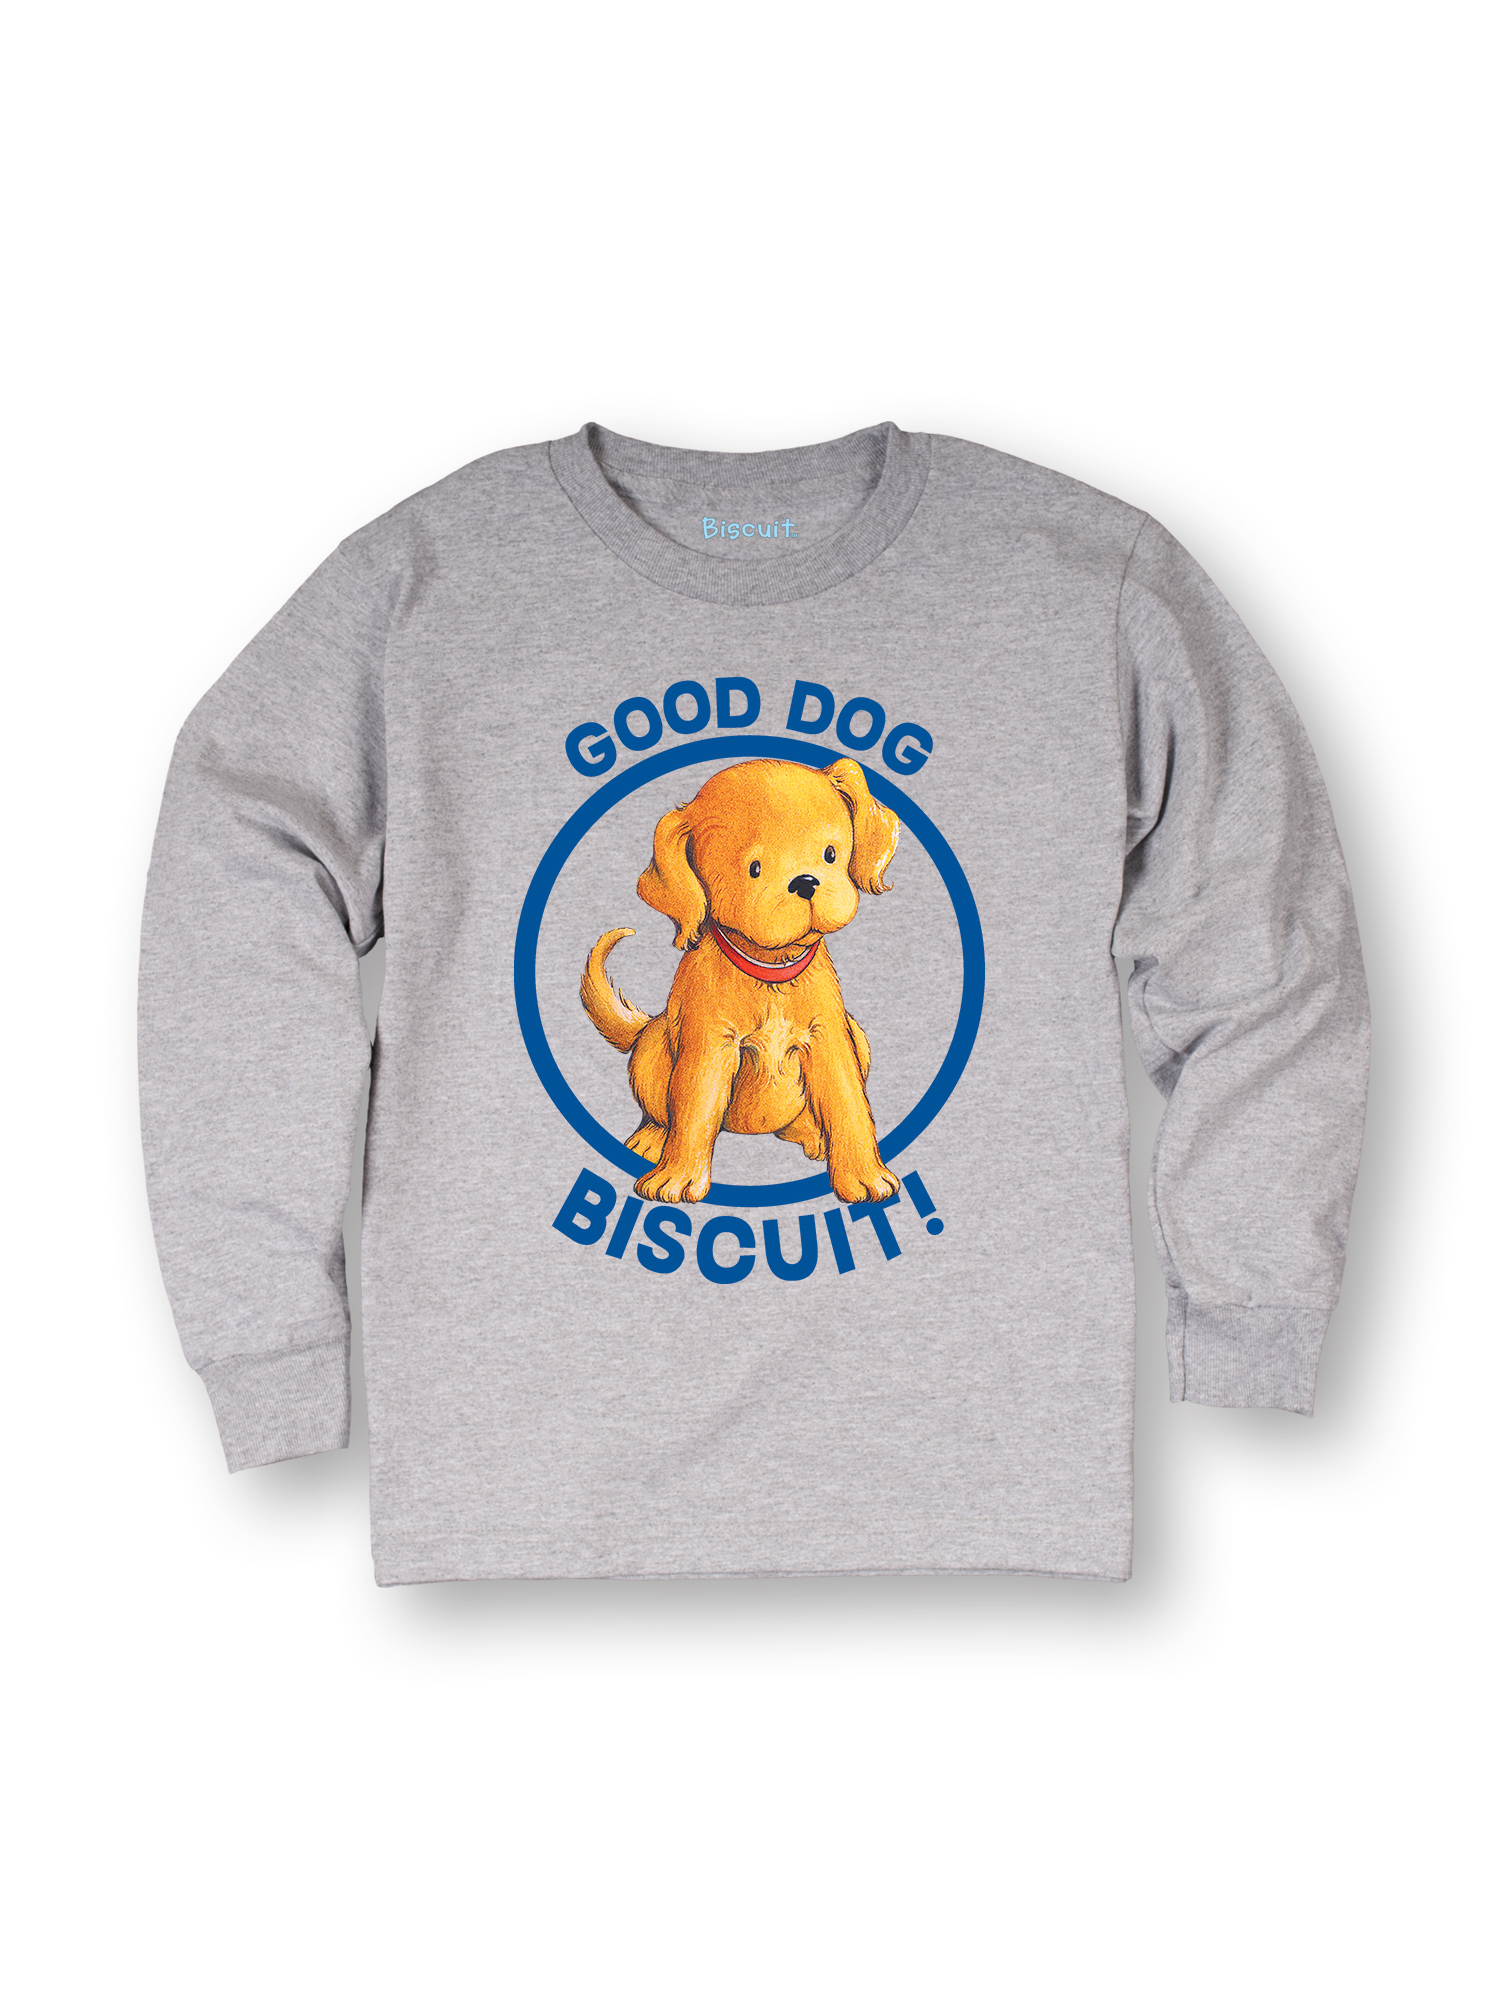 Biscuit Good Dog TODDLER LONG SLEEVE TEE